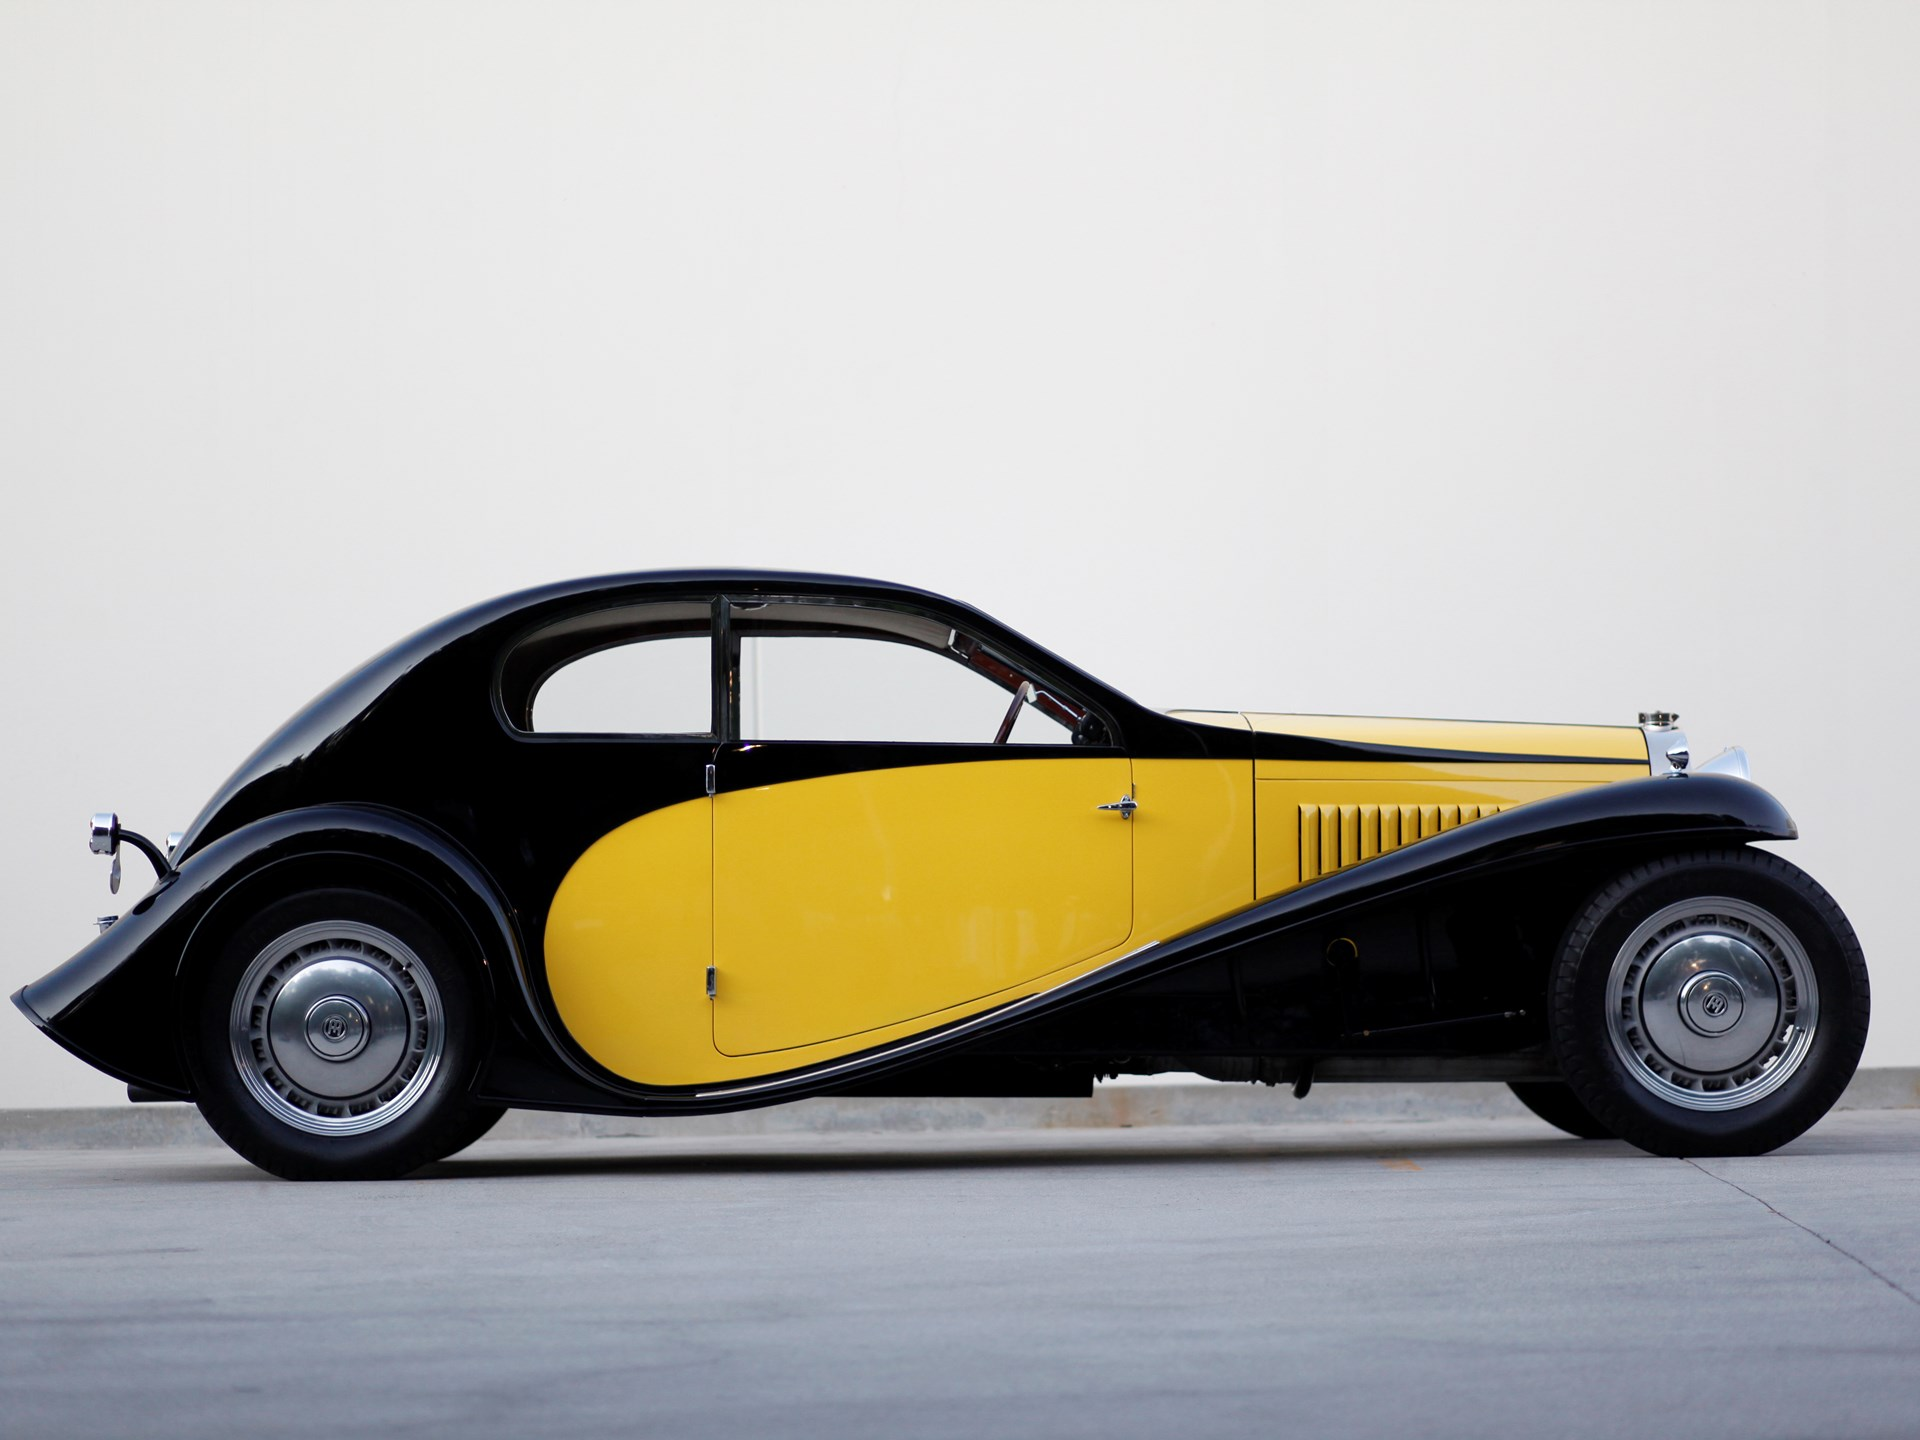 Bugatti Type on bugatti limousine, bugatti fast and furious 7, bugatti superveyron, ettore bugatti, bugatti emblem, bugatti 16c galibier concept, bugatti stretch limo, bugatti eb118, bugatti tumblr, bugatti eb110, bugatti phone, bugatti hd, bugatti company, bugatti type 51, bugatti finale, bugatti prototypes, bugatti engine, bentley 3.5 litre, bugatti hennessey venom, bugatti design, roland bugatti, bugatti with girls, bugatti veyron, bugatti mph, bugatti aventador, bugatti royale,